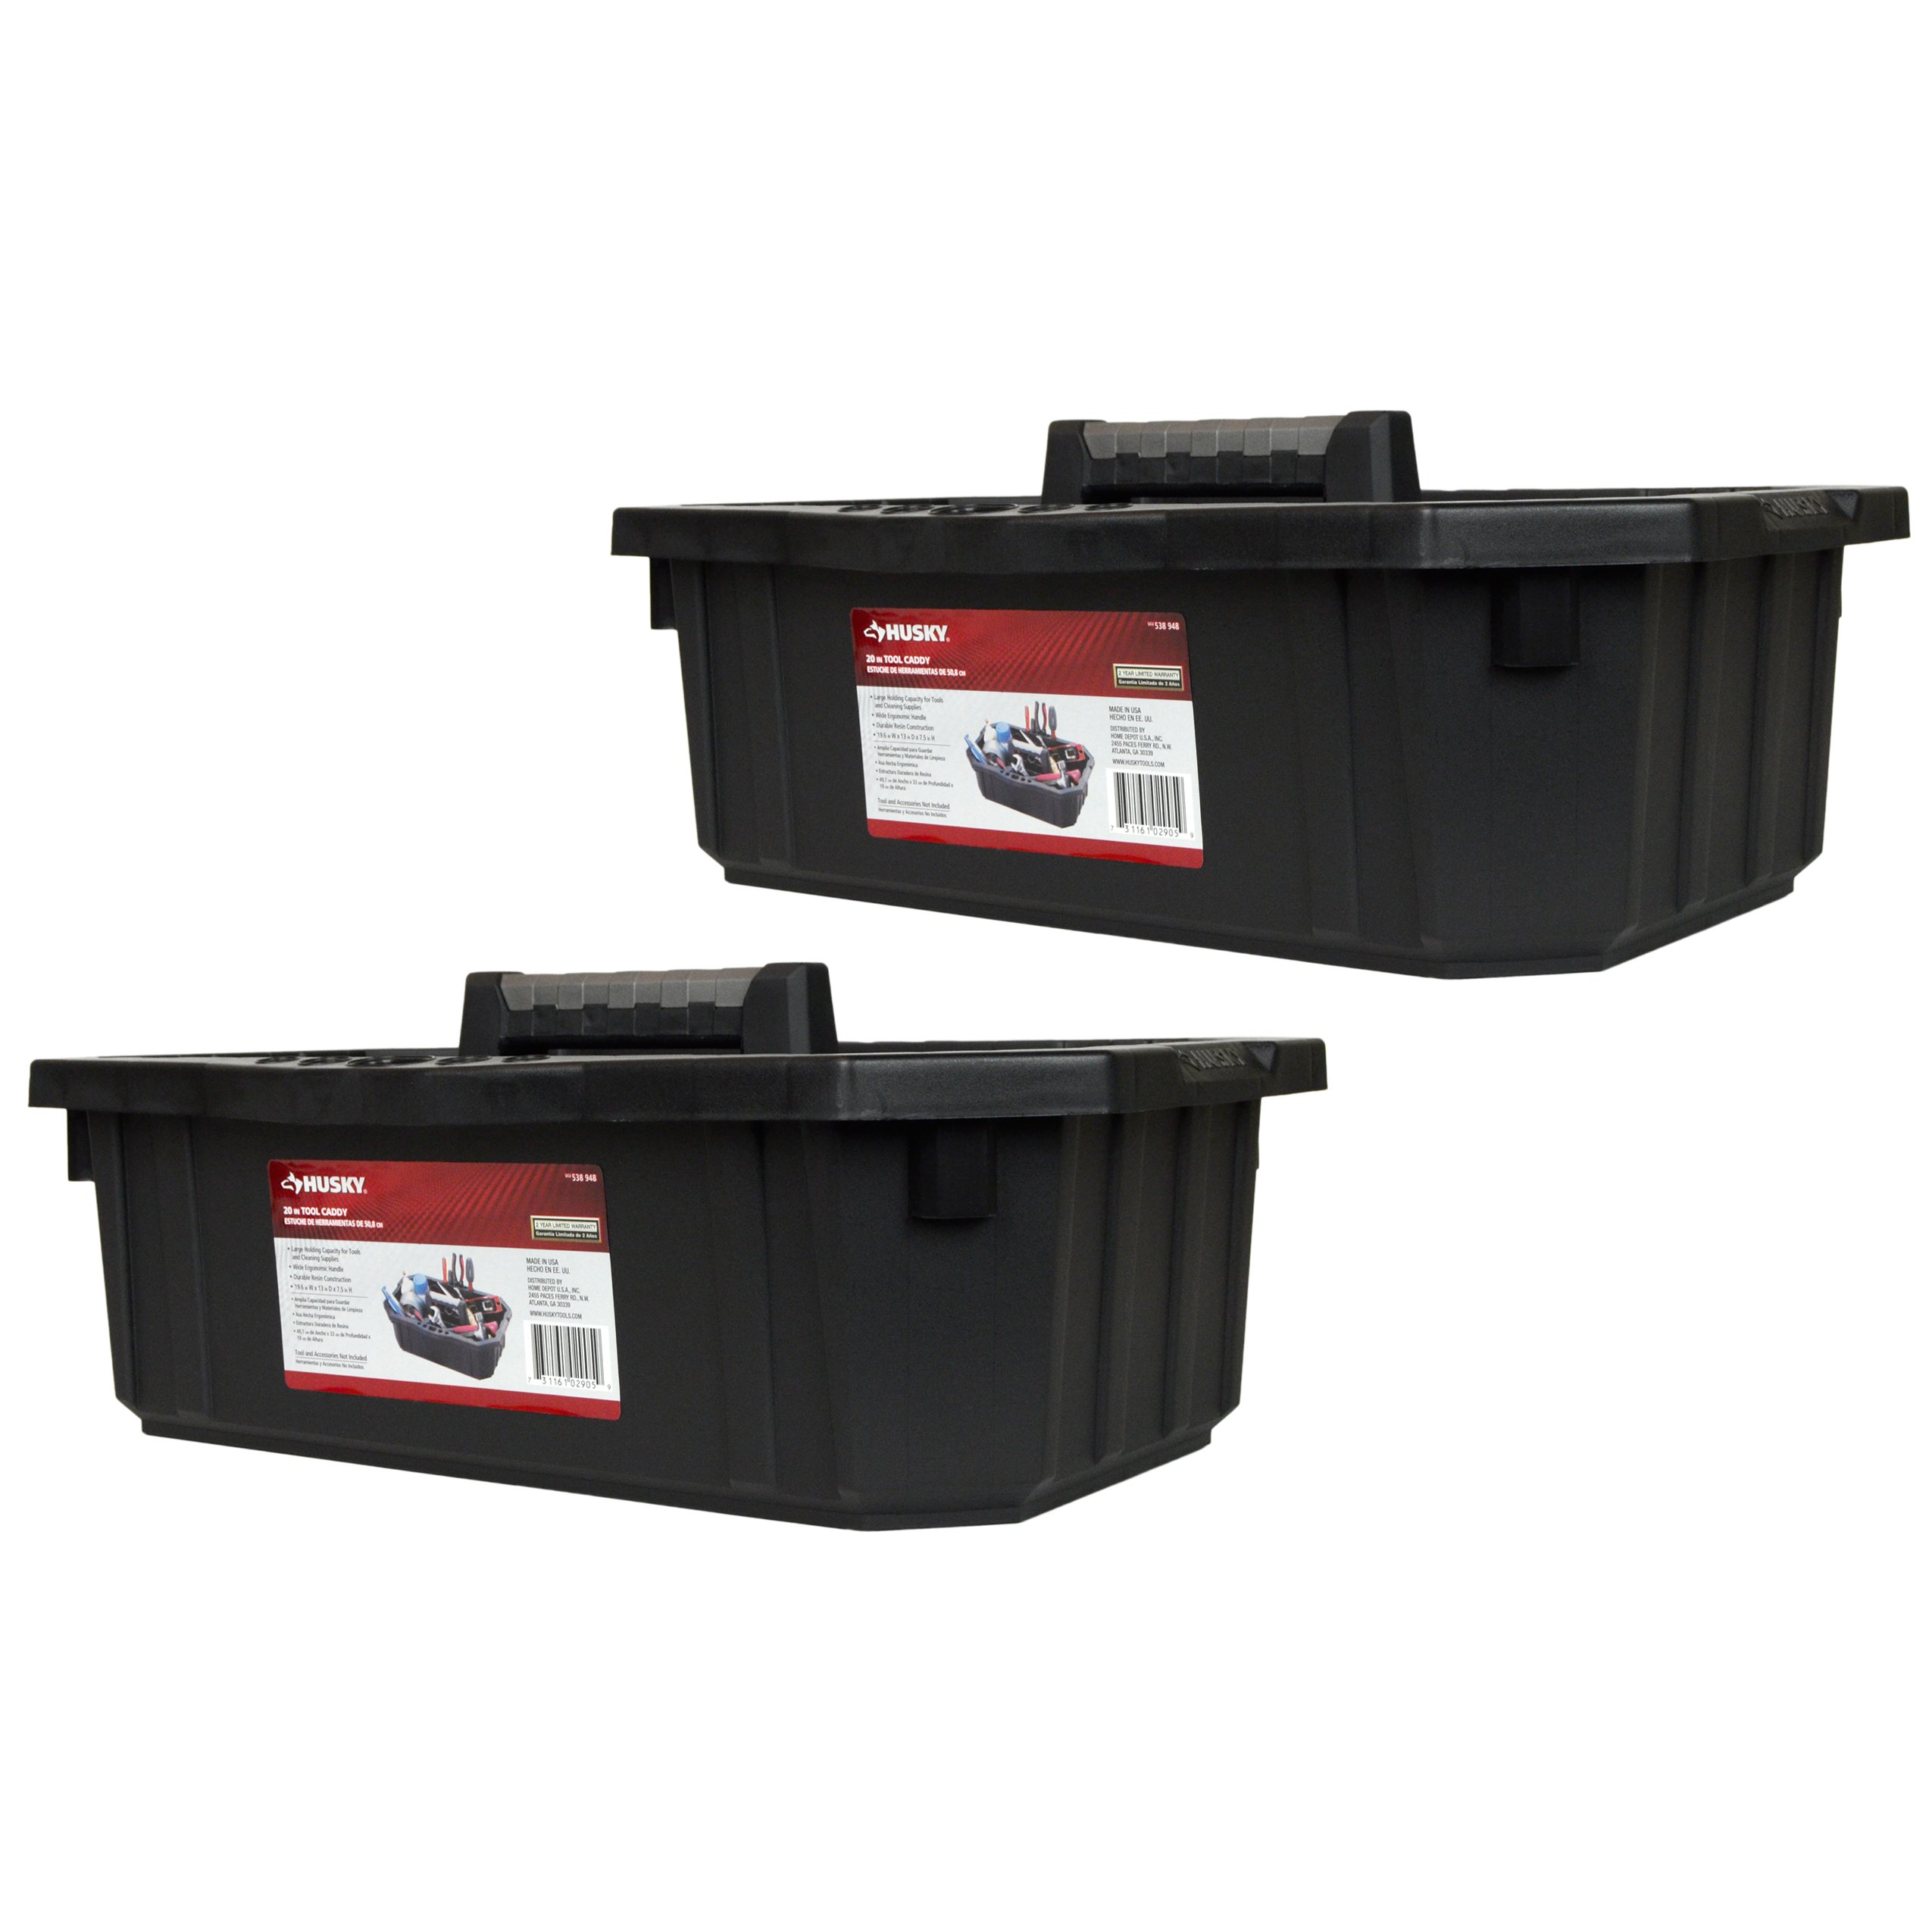 Husky 19.6'' x 3'' x 7.5'' Single Compartment Tool Organizer Caddy - 2 Pack